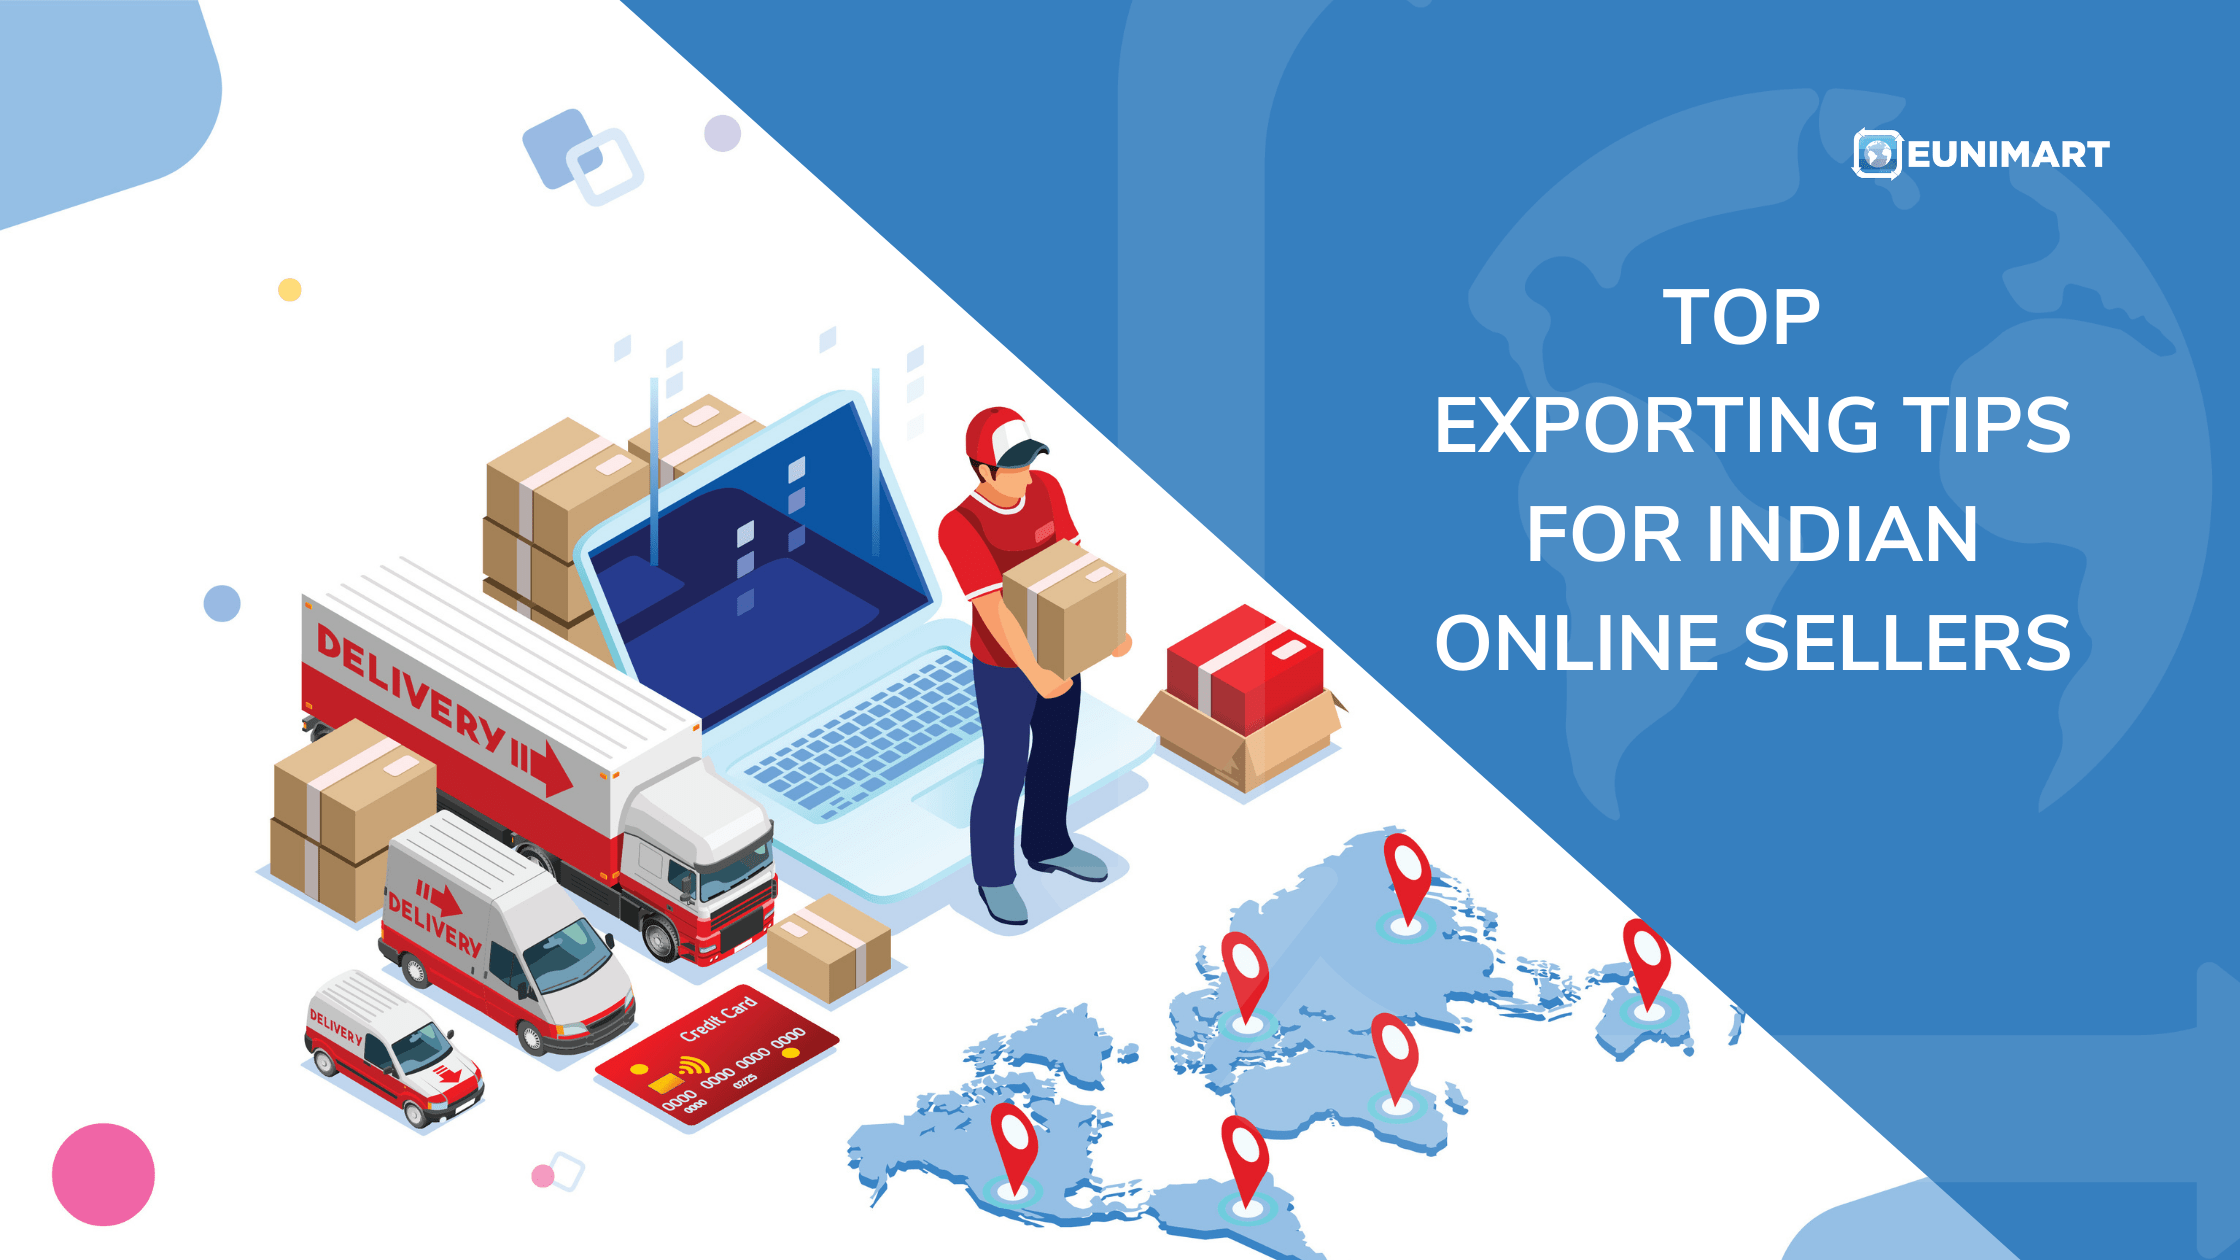 Top Exporting Tips for Indian Online Sellers